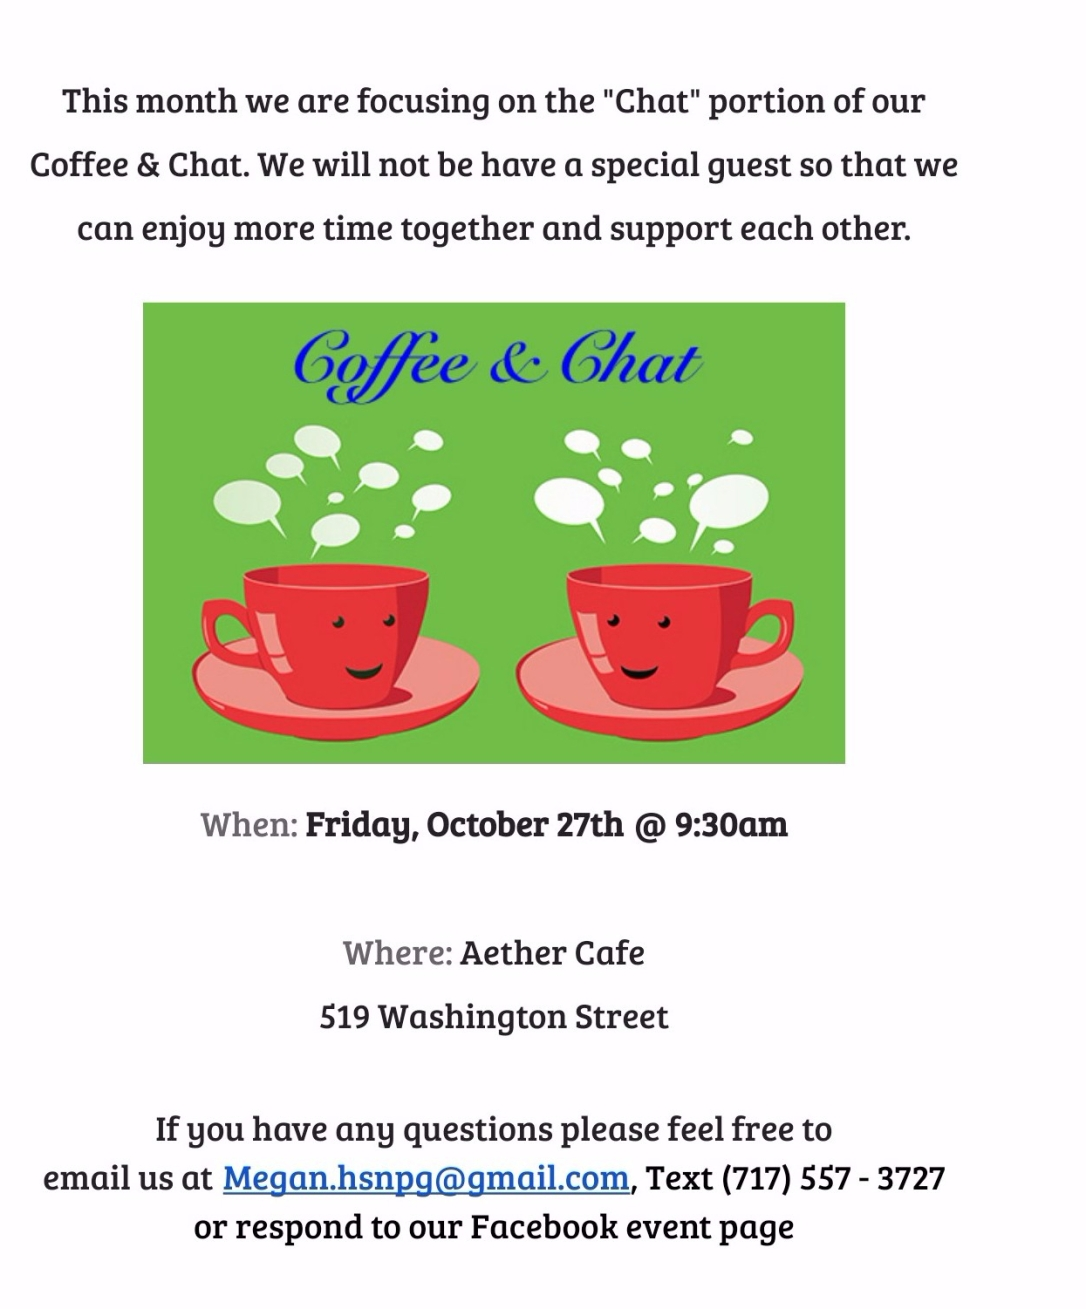 coffeechat-oct2-e1508865298183.jpg